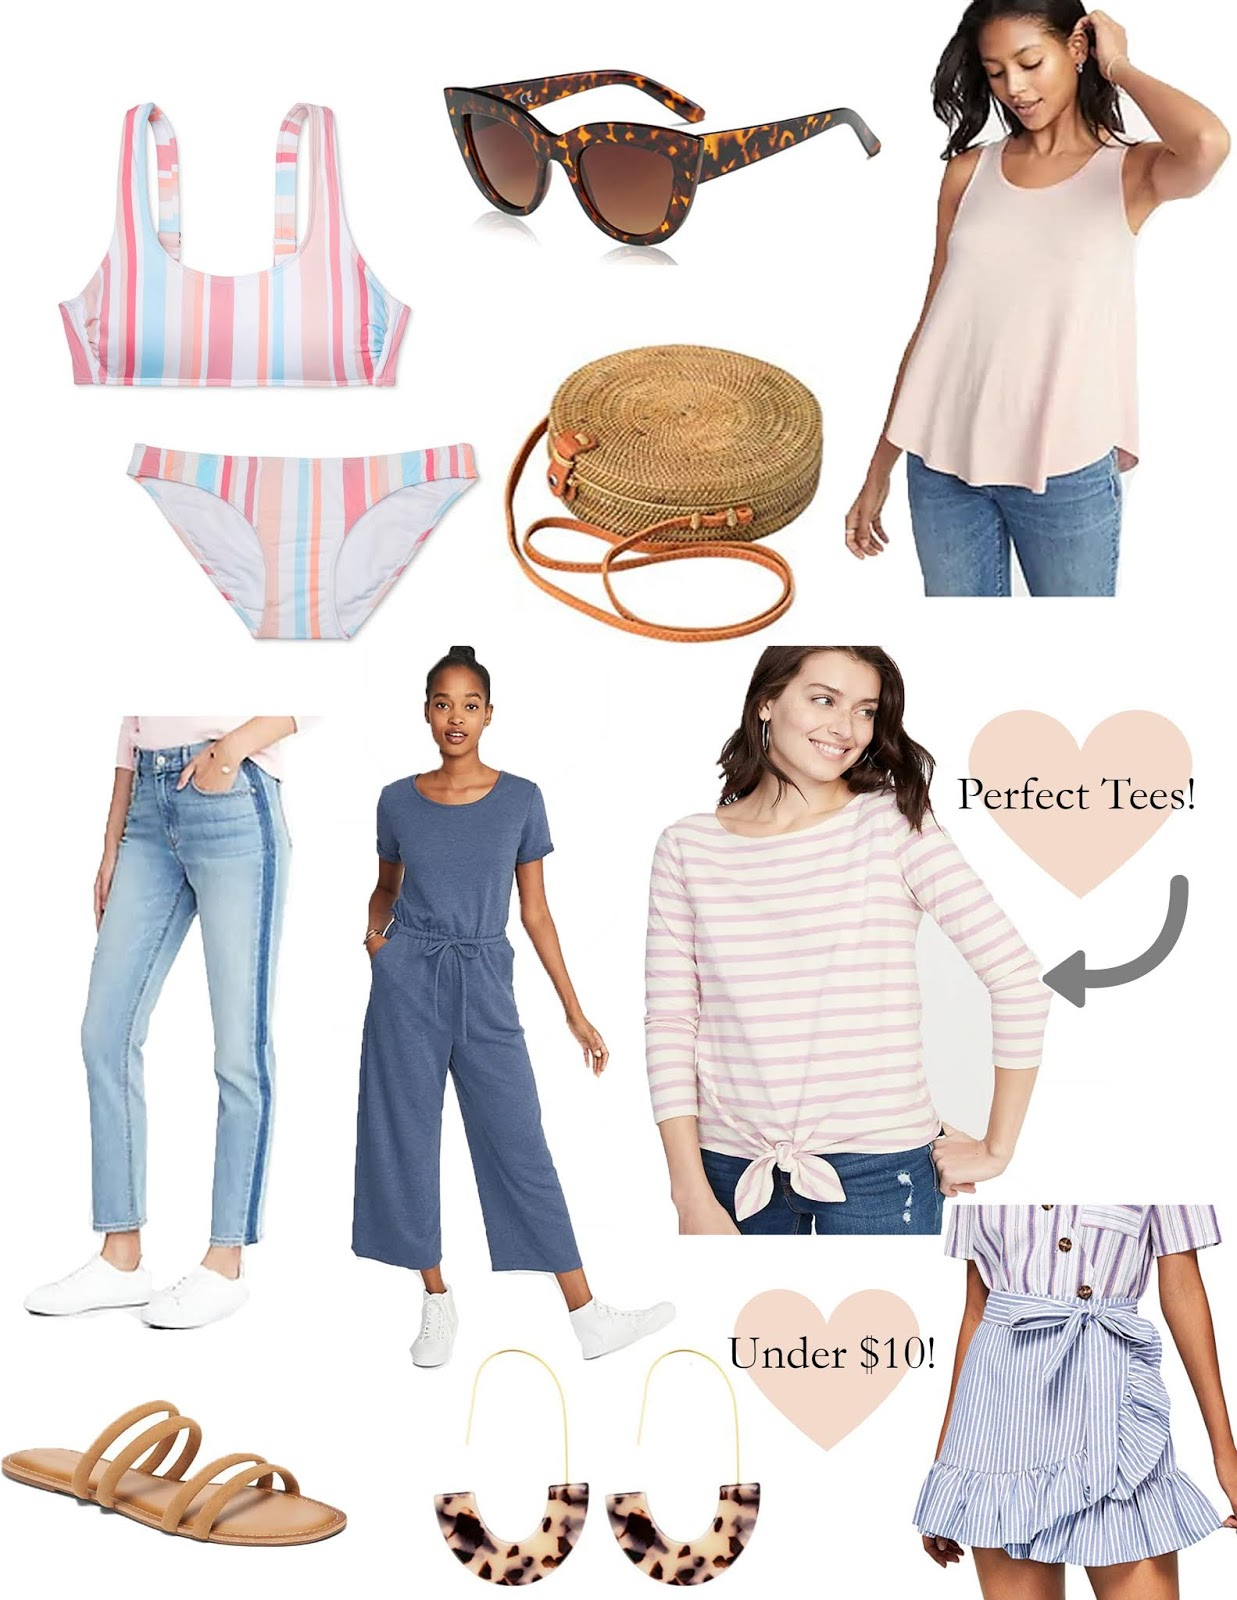 College Spring Break, Affordable Shopping List, Spring Break Fashion